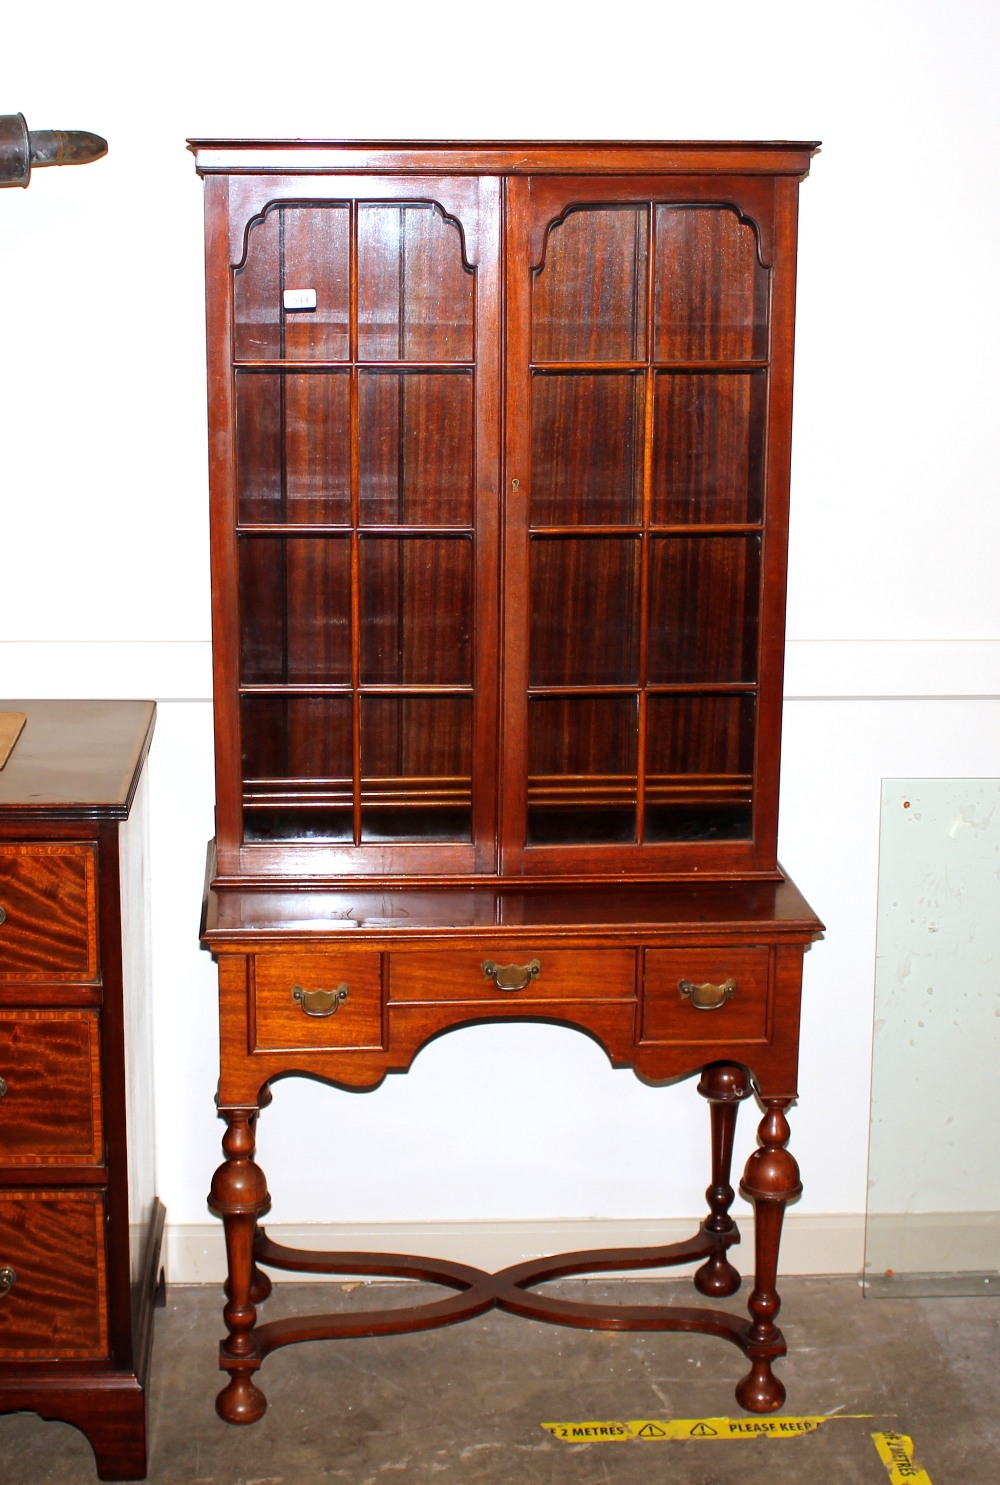 A 19th Century mahogany bookcase on stand,the upper section fitted adjustable shelves enclosed by